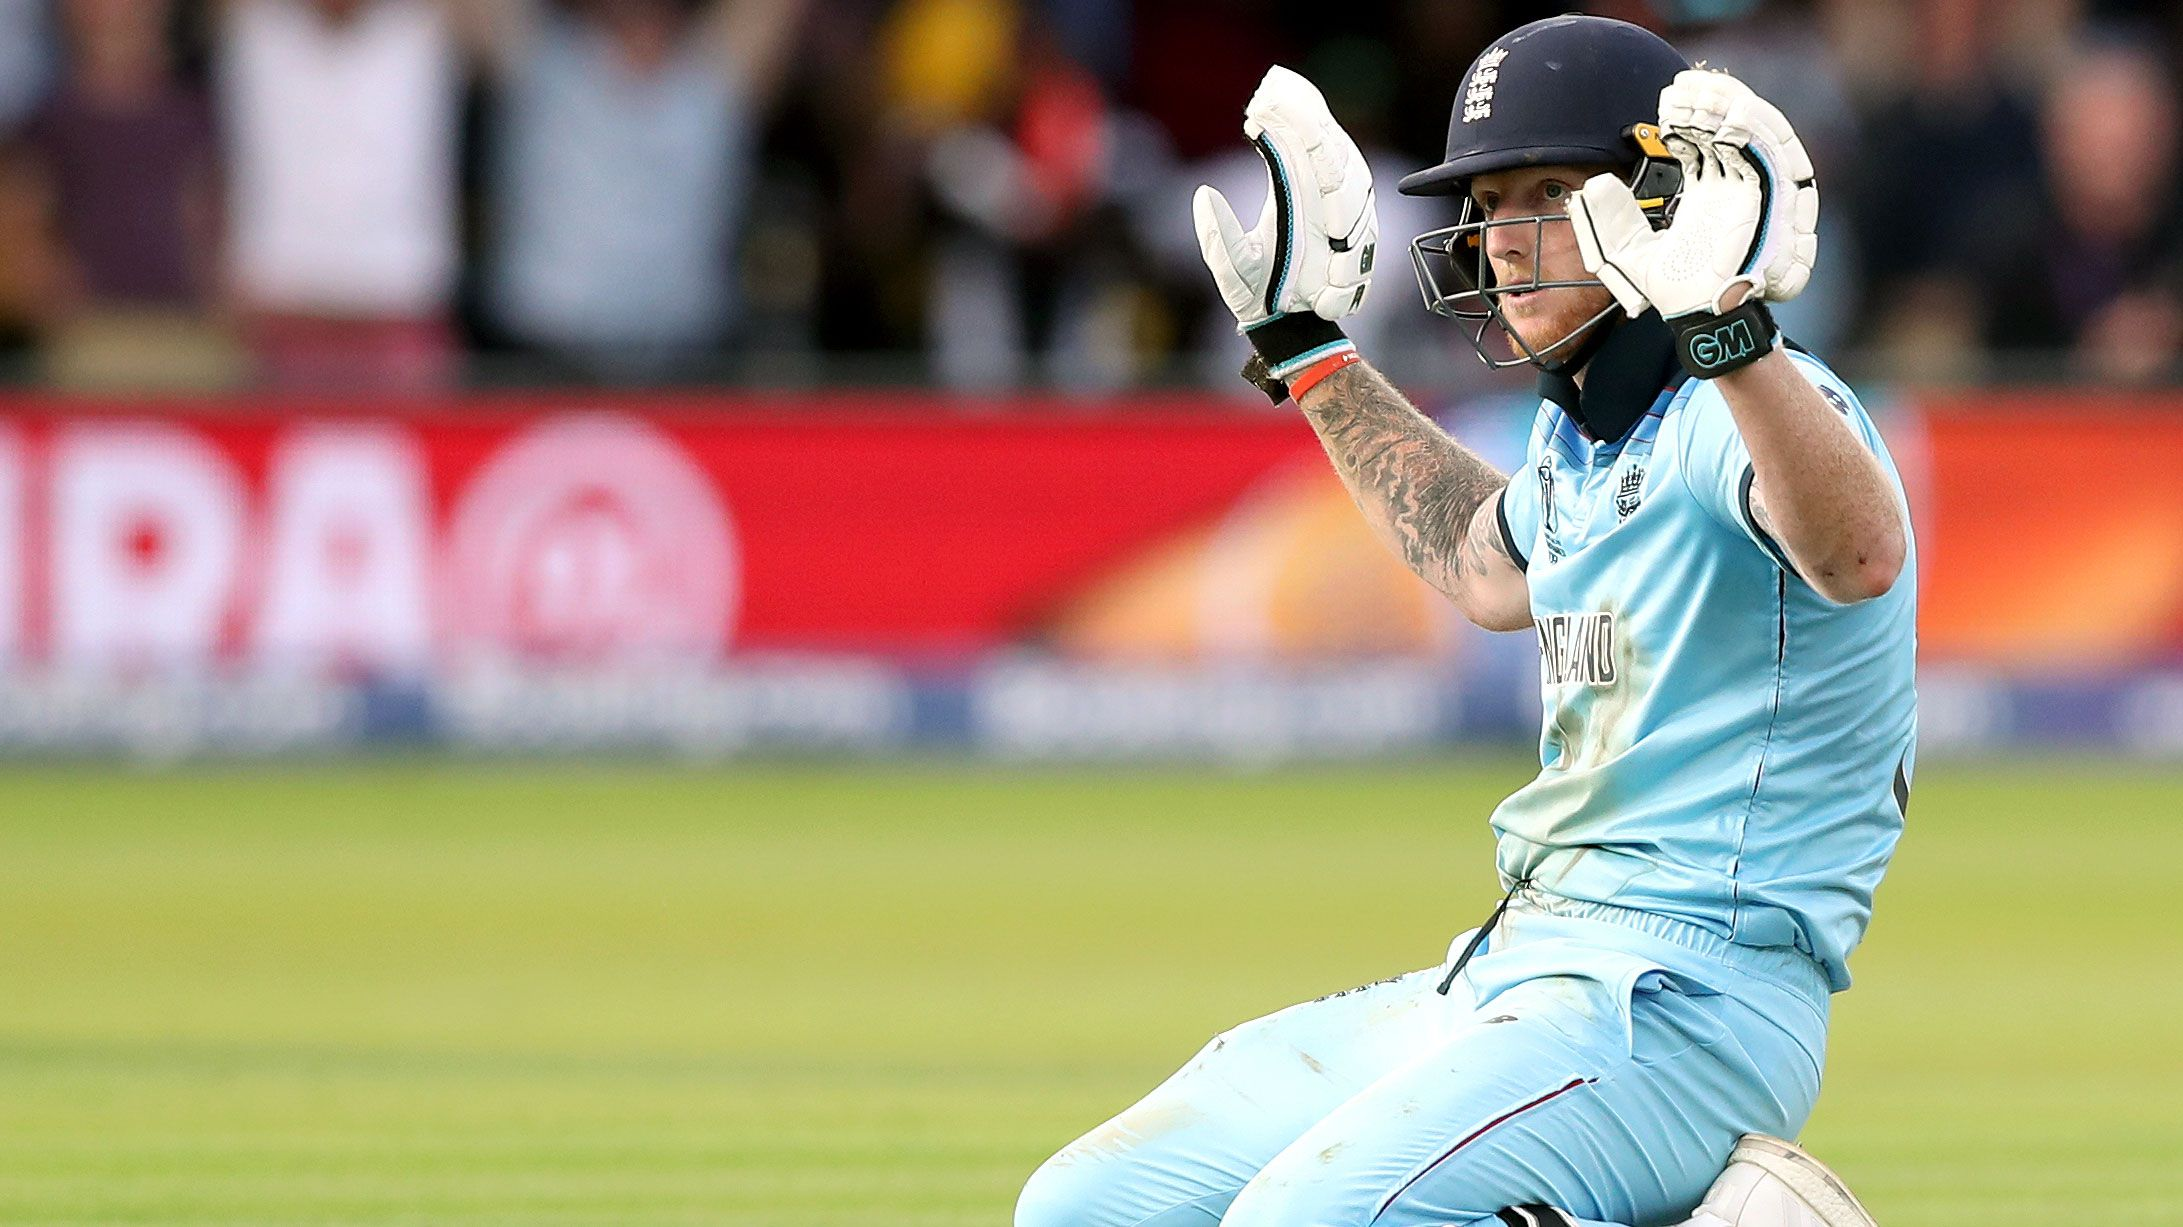 England cricket respond to controversial World Cup final call as ex-umpire slams 'clear mistake'